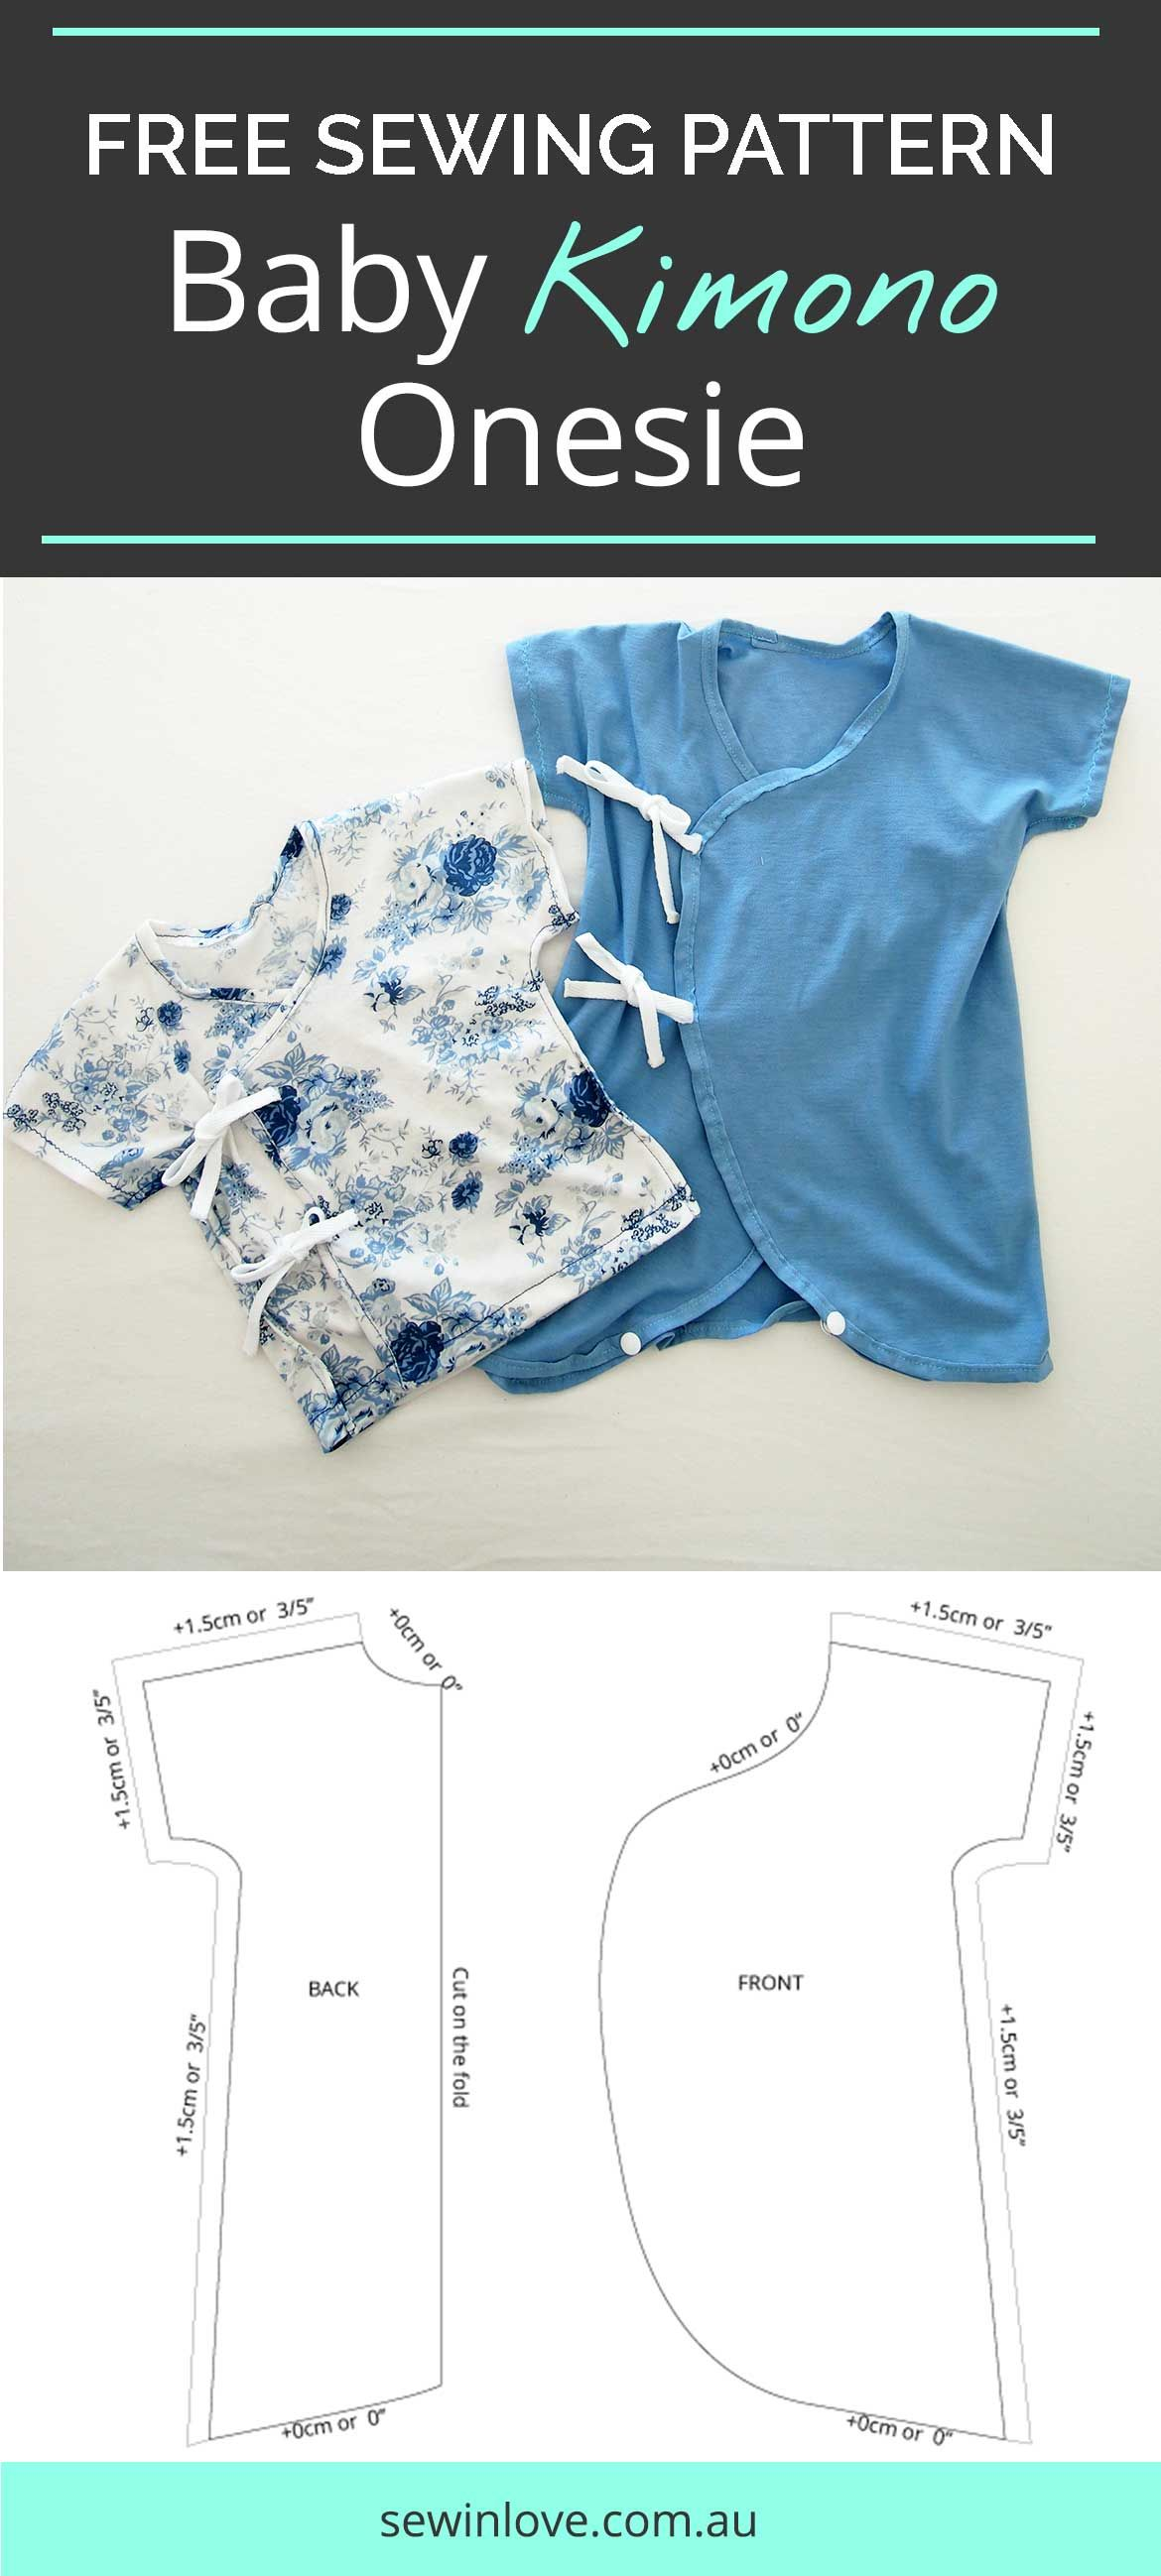 Another Baby Kimono Sewing Pattern - Onesie Version | sewing ...